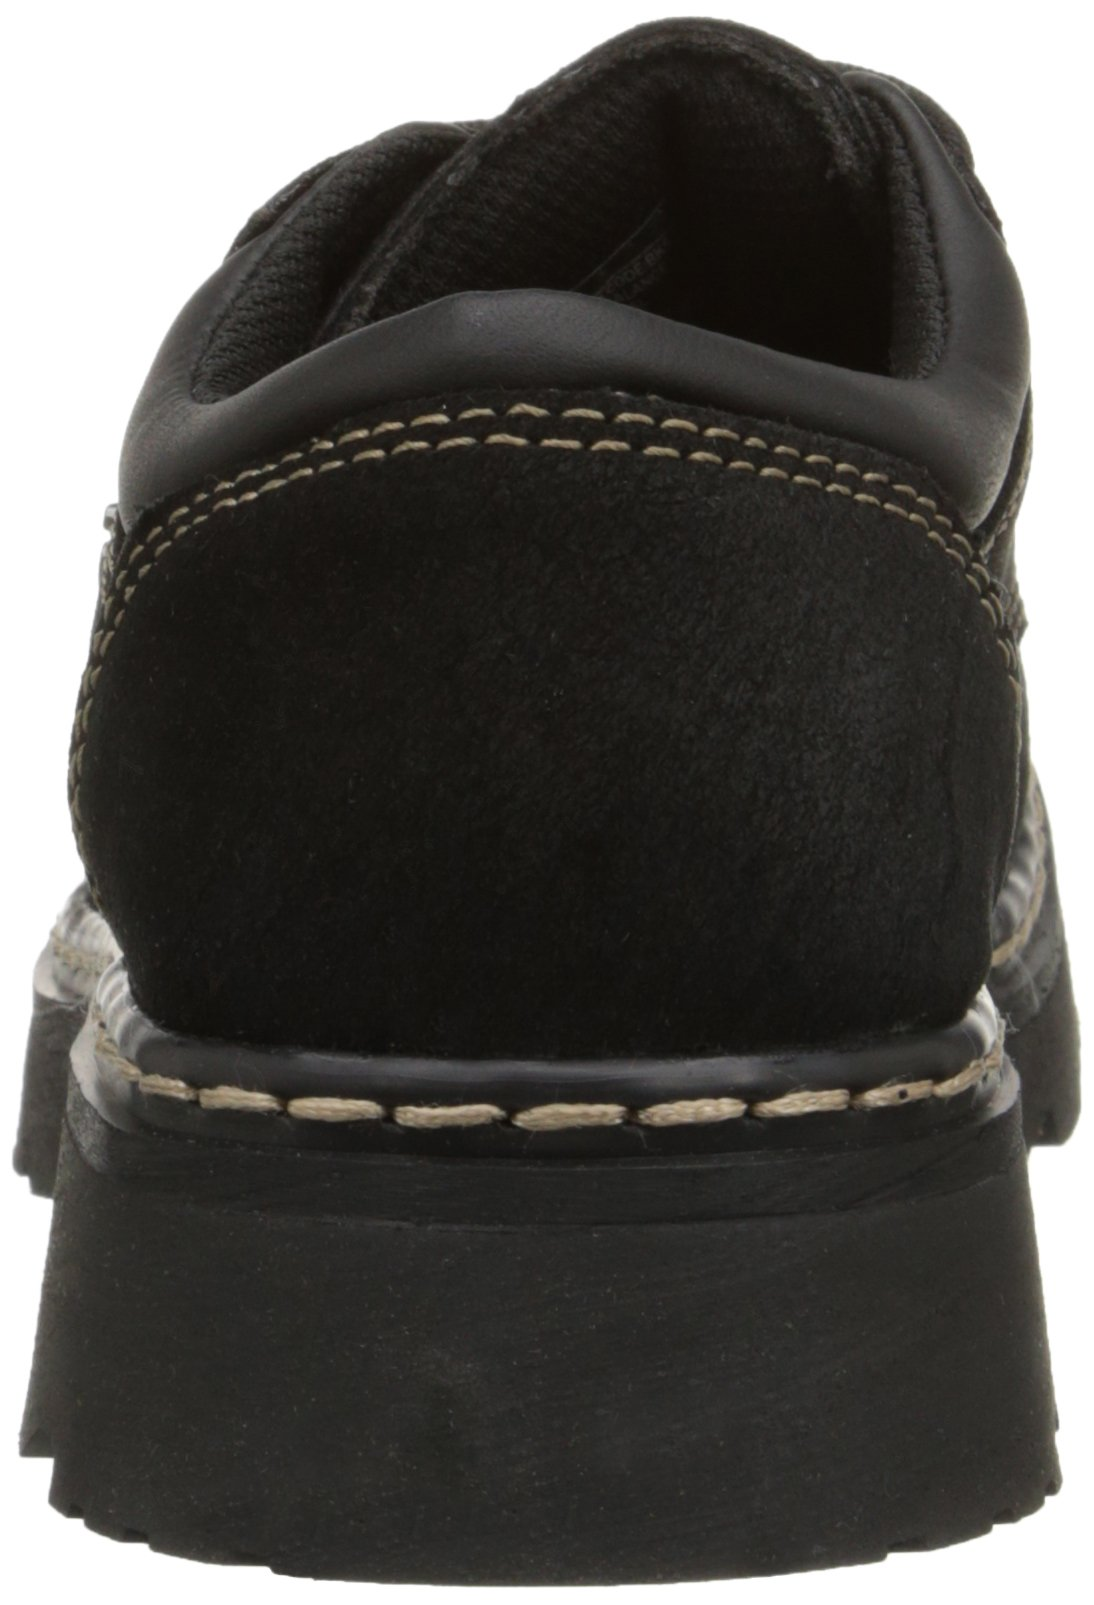 Skechers Women's Parties – Mate Oxford Shoes